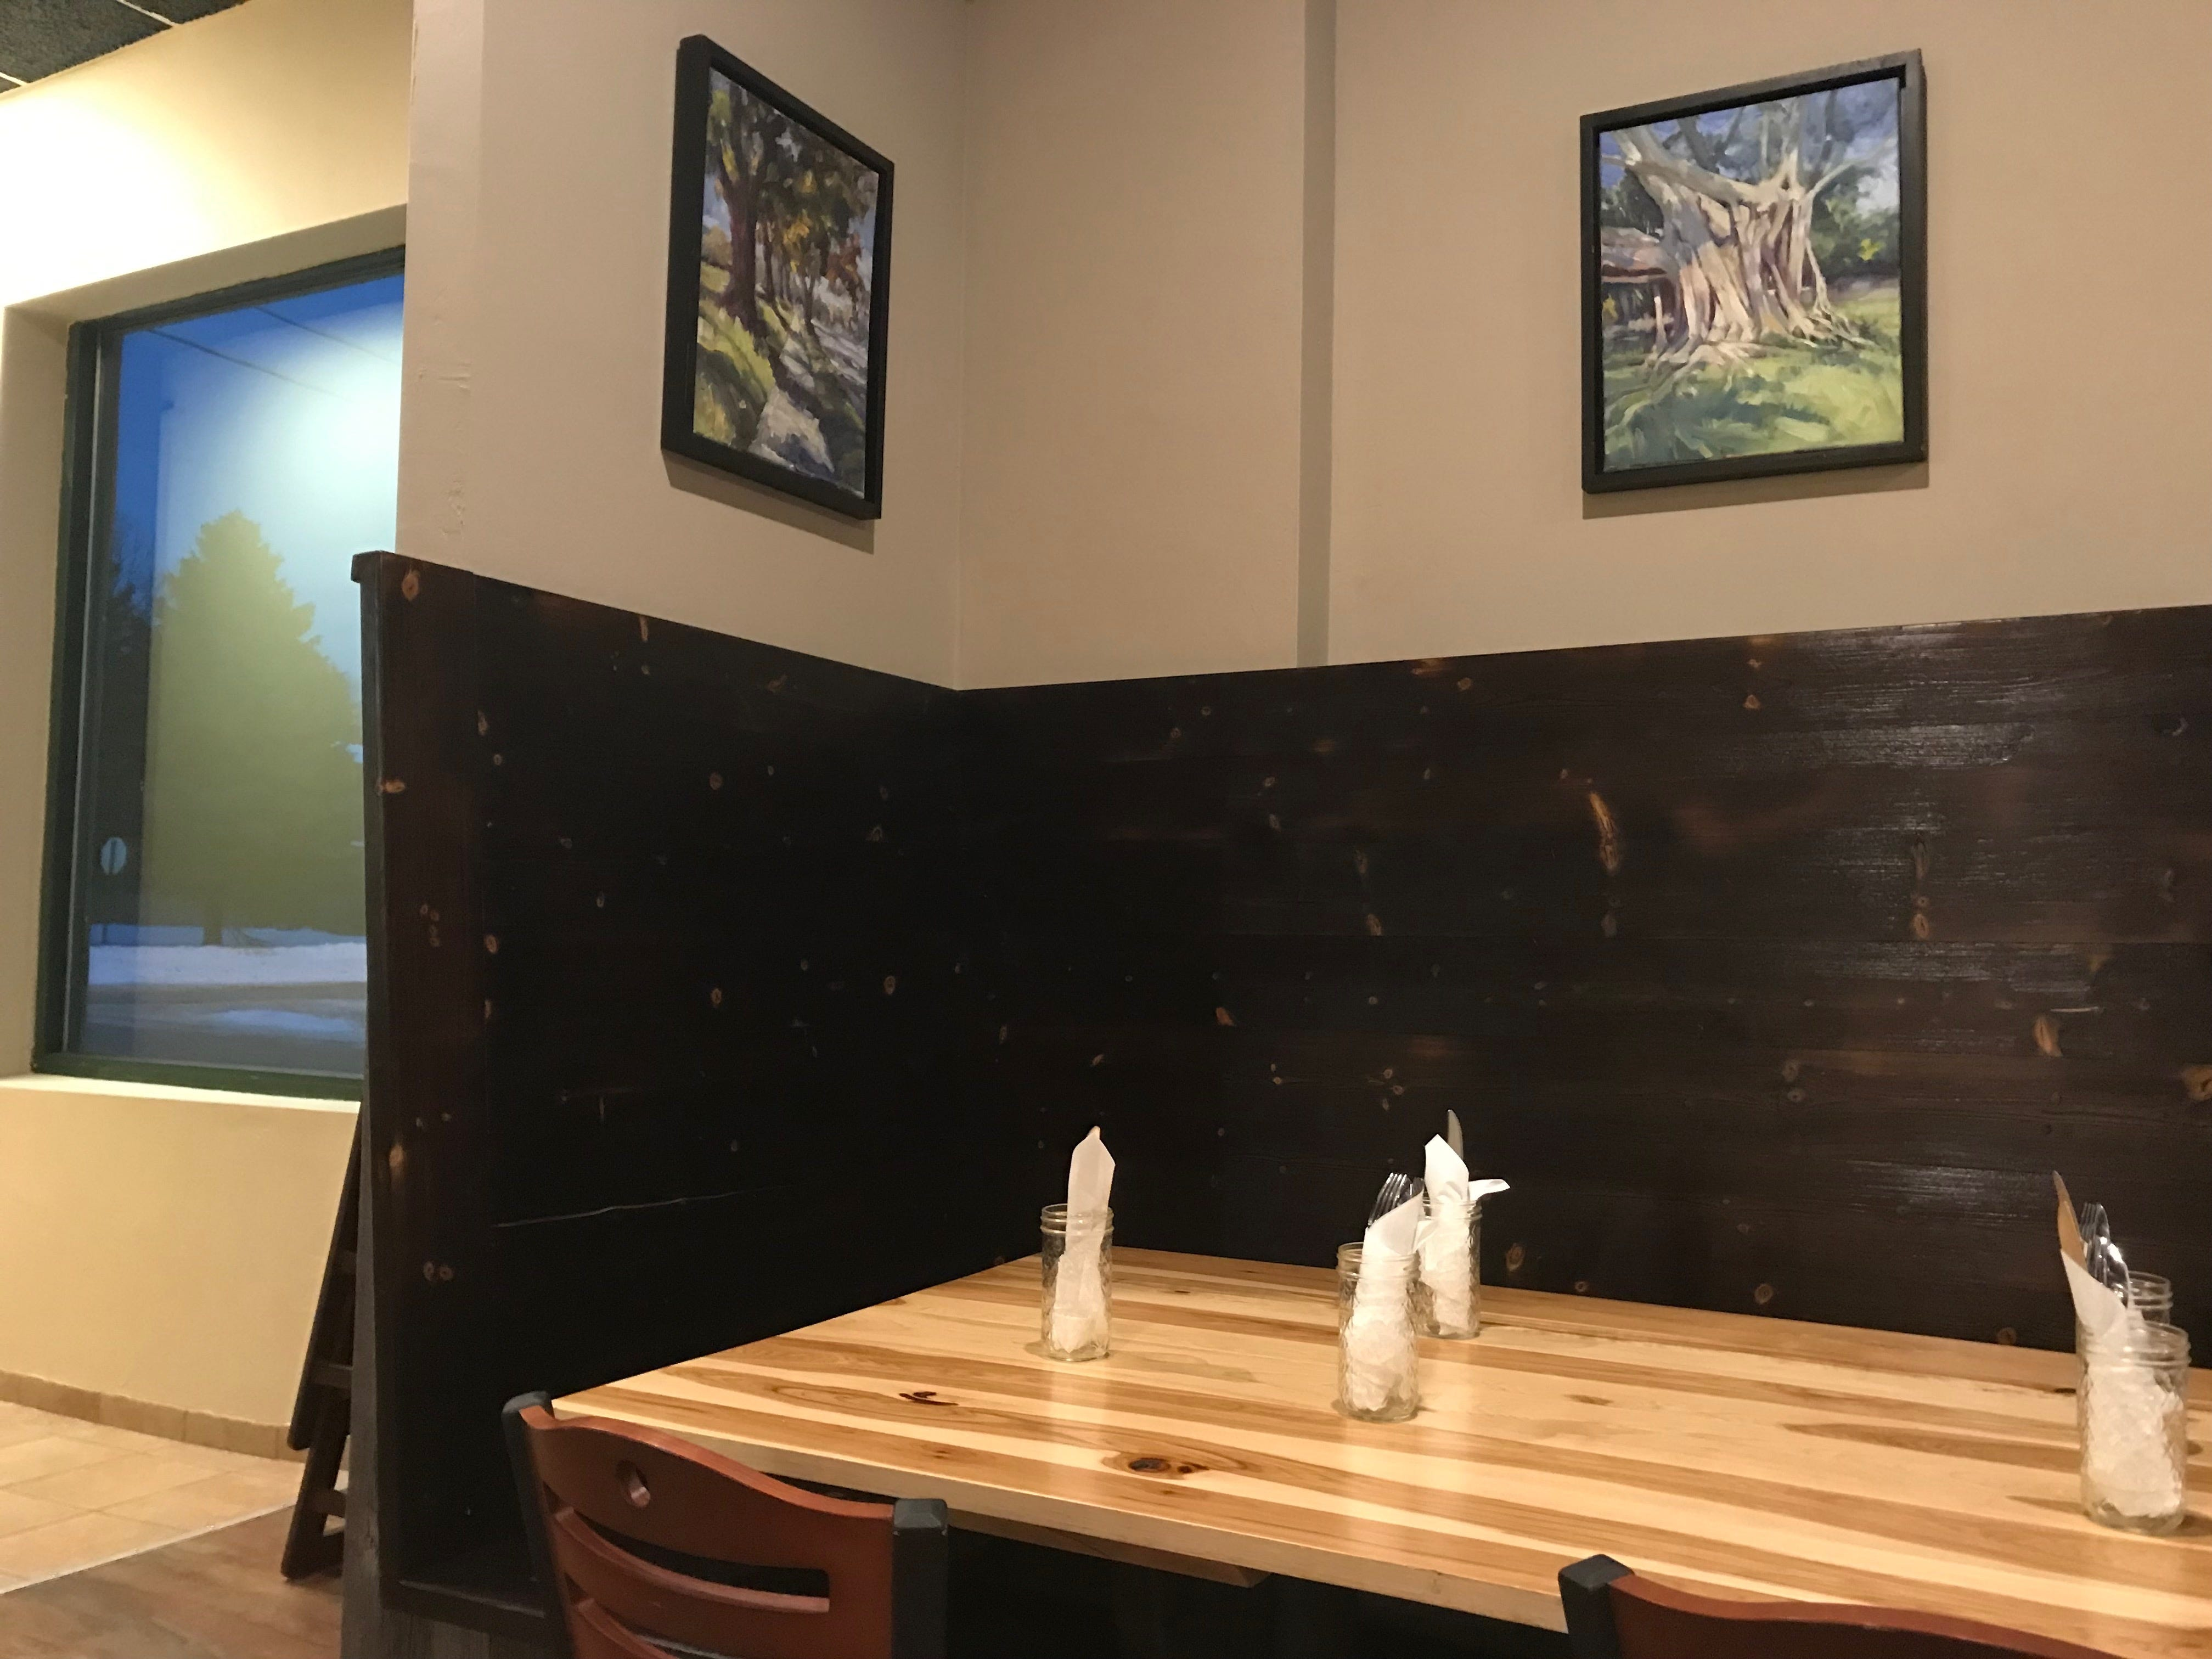 Holla dining room has a modern feel and displays local artwork.